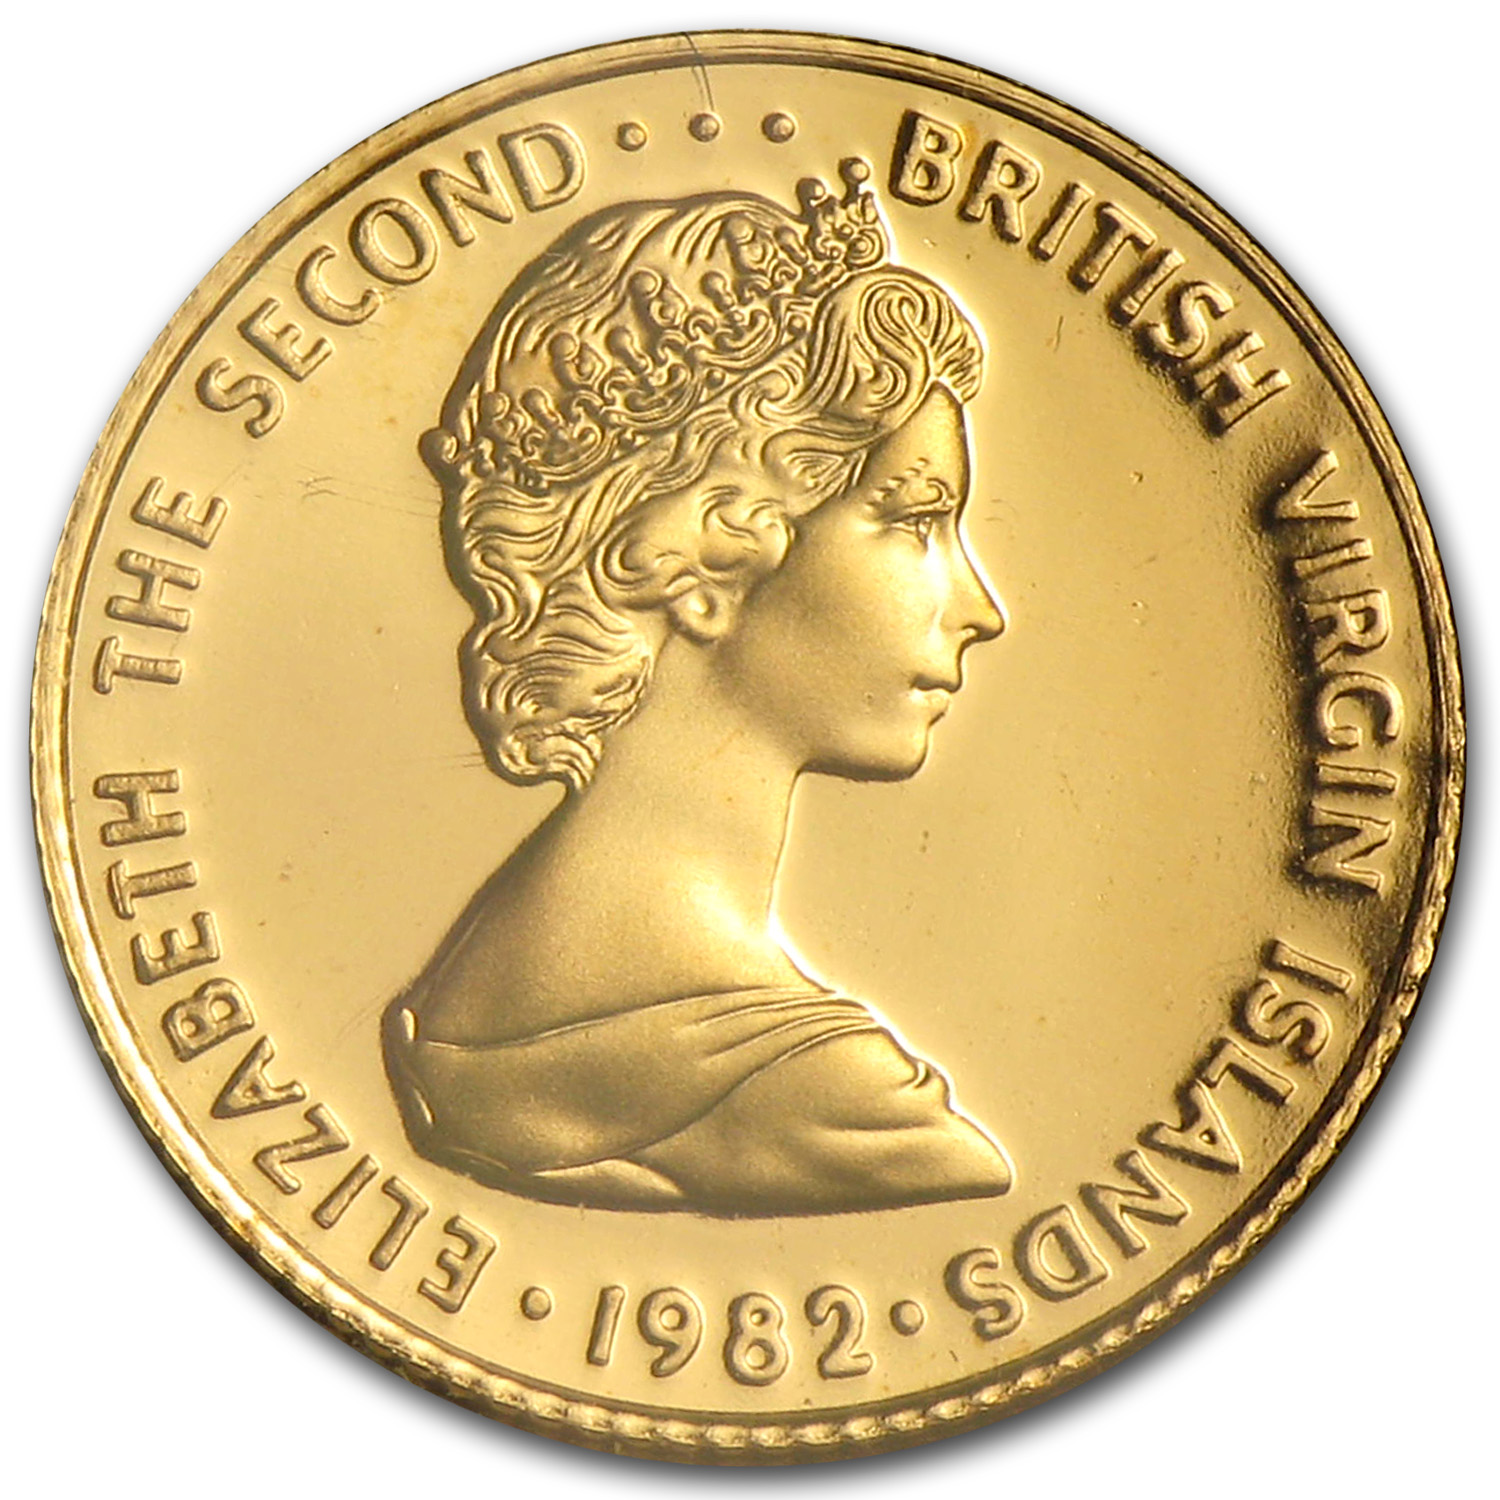 British Virgin Islands 1982 25 Dollars Gold Proof